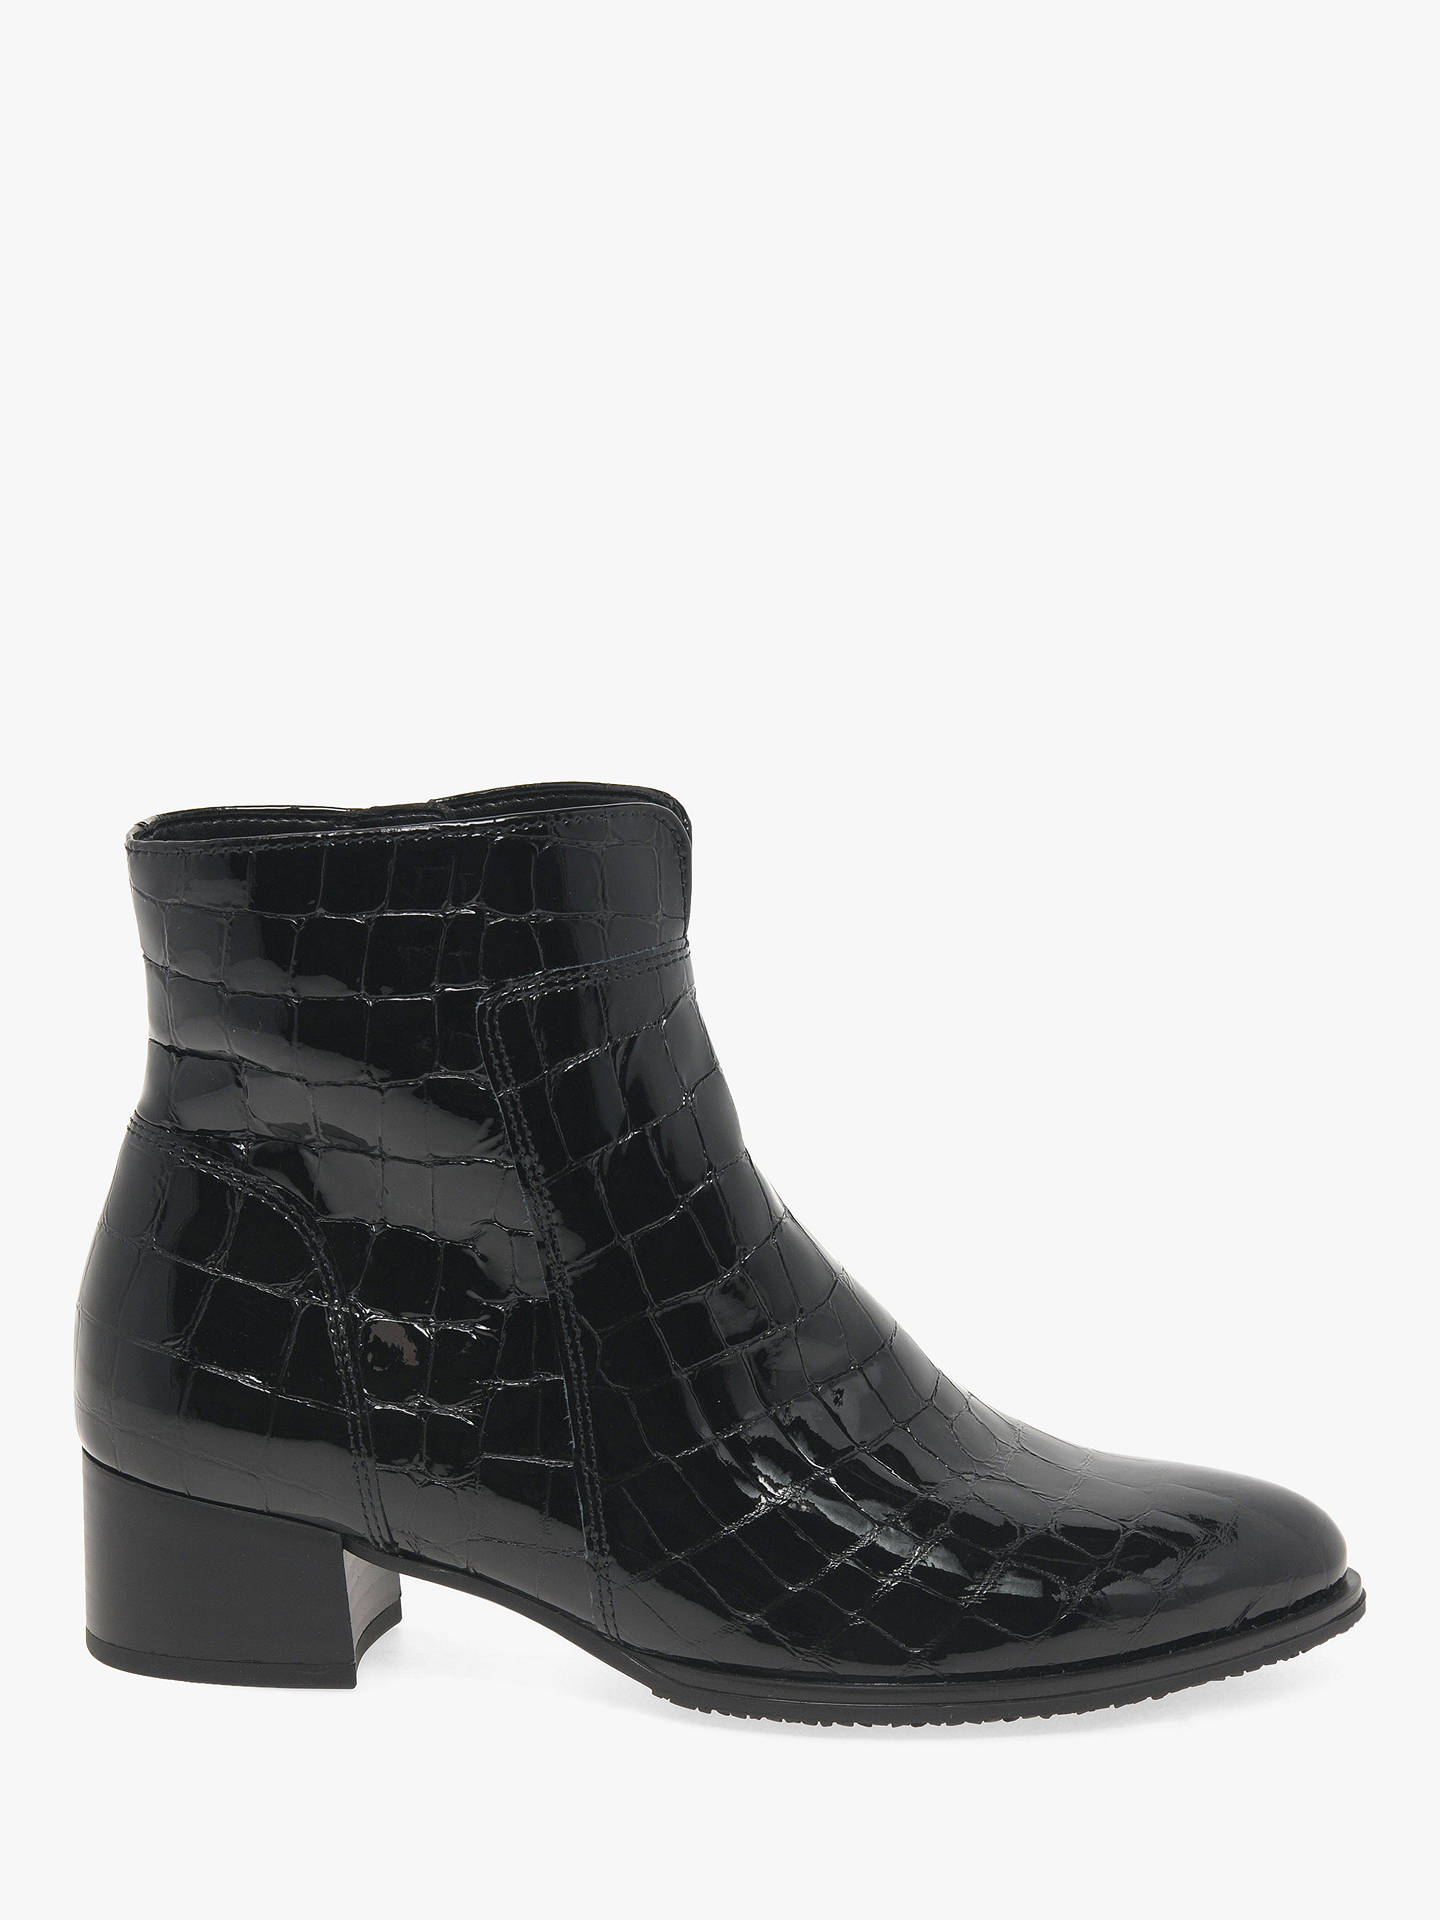 sports shoes 2c616 9cfaf Gabor Delphino Block Heel Leather Ankle Boots, Black Patent